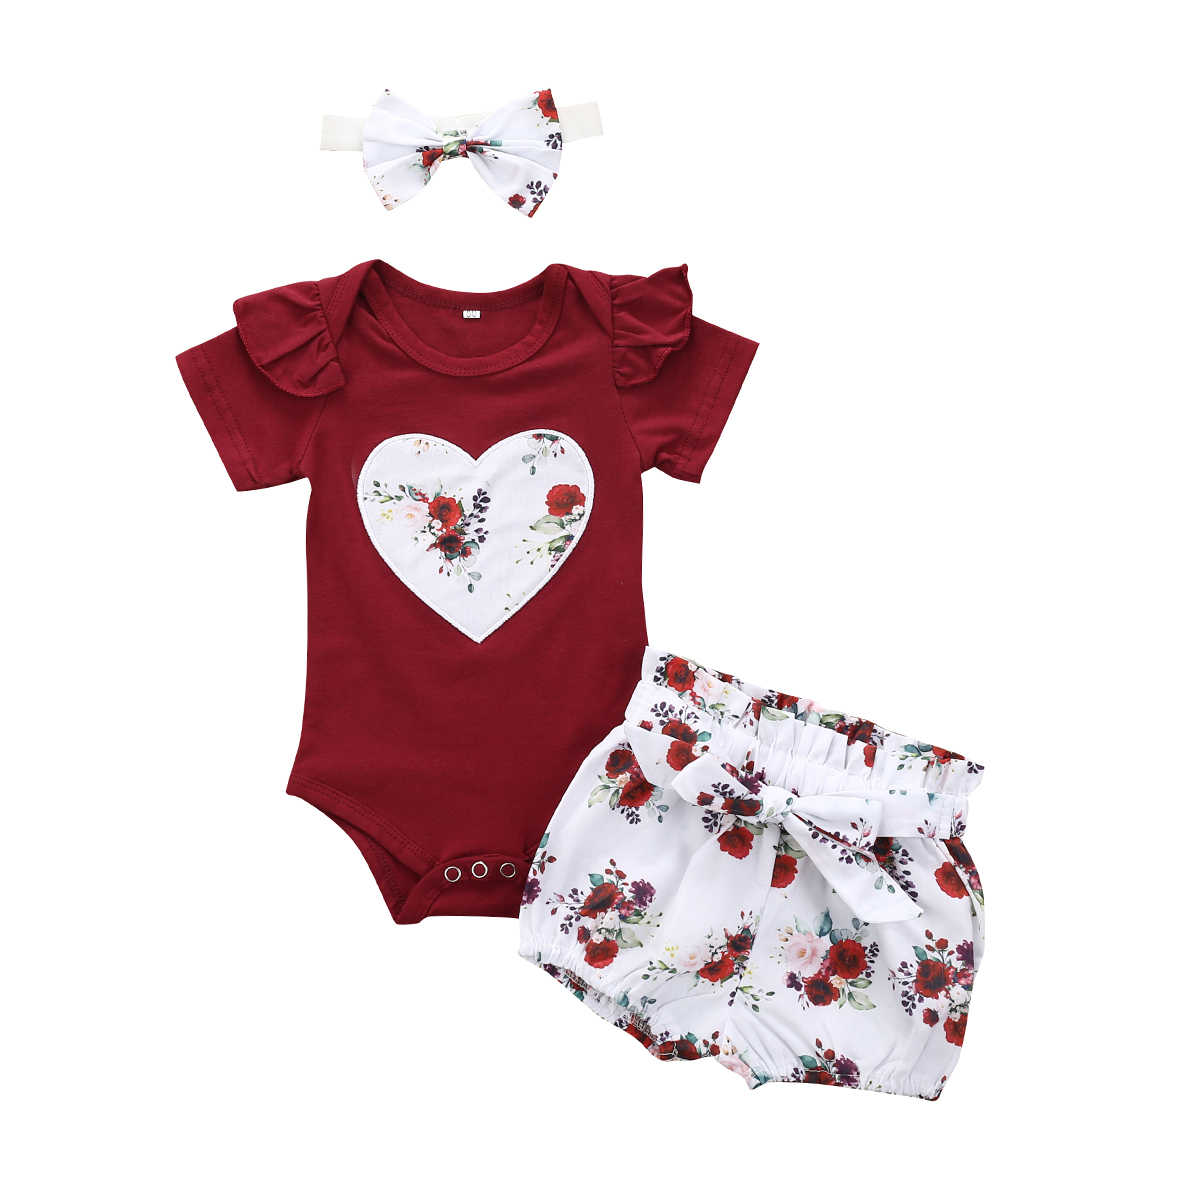 Toddler Girl Clothes 2020 Newborn Baby Girls Kid Clothes Jumpsuit Tops + Flowers Shorts + Headband 3PCS